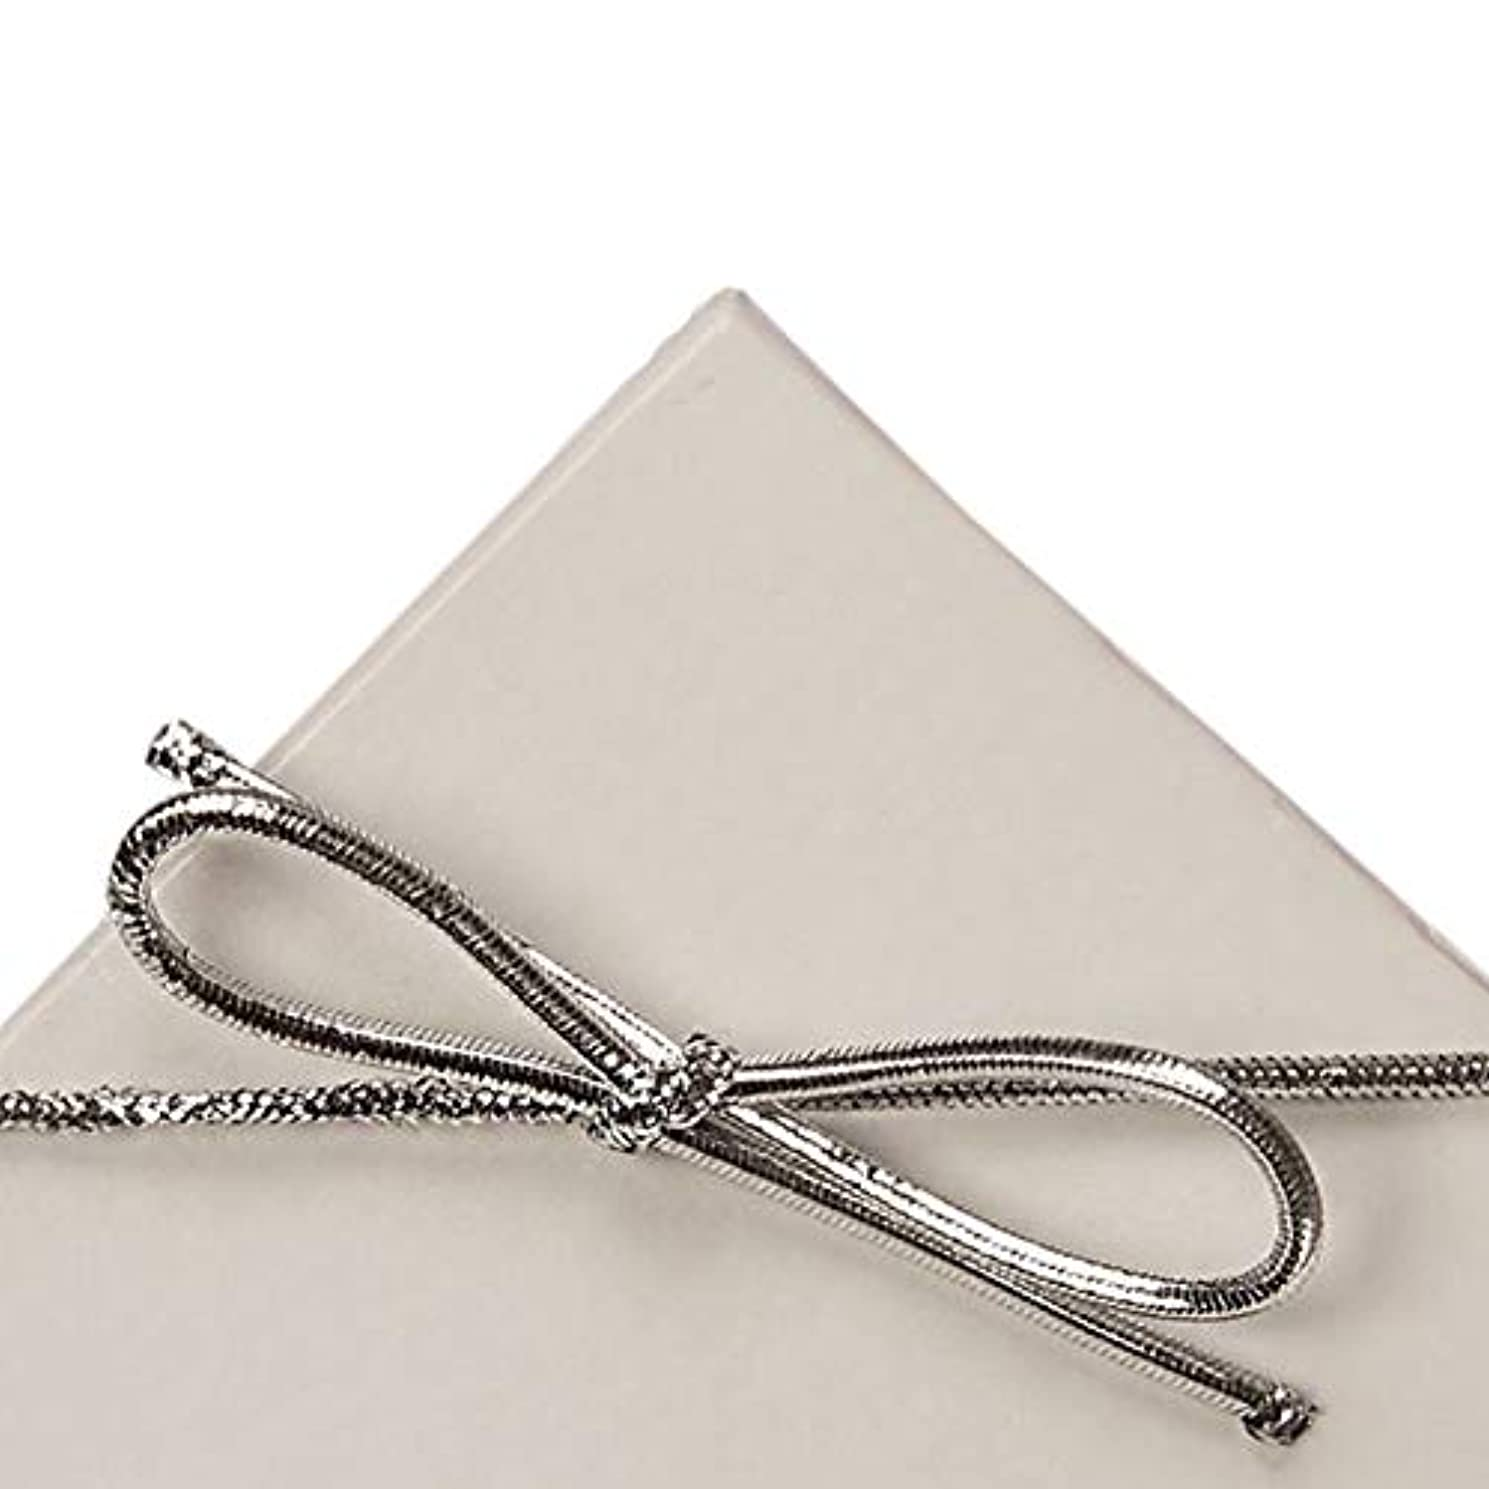 19 Inch Silver Metallic Stretch Loops with Bows (50)